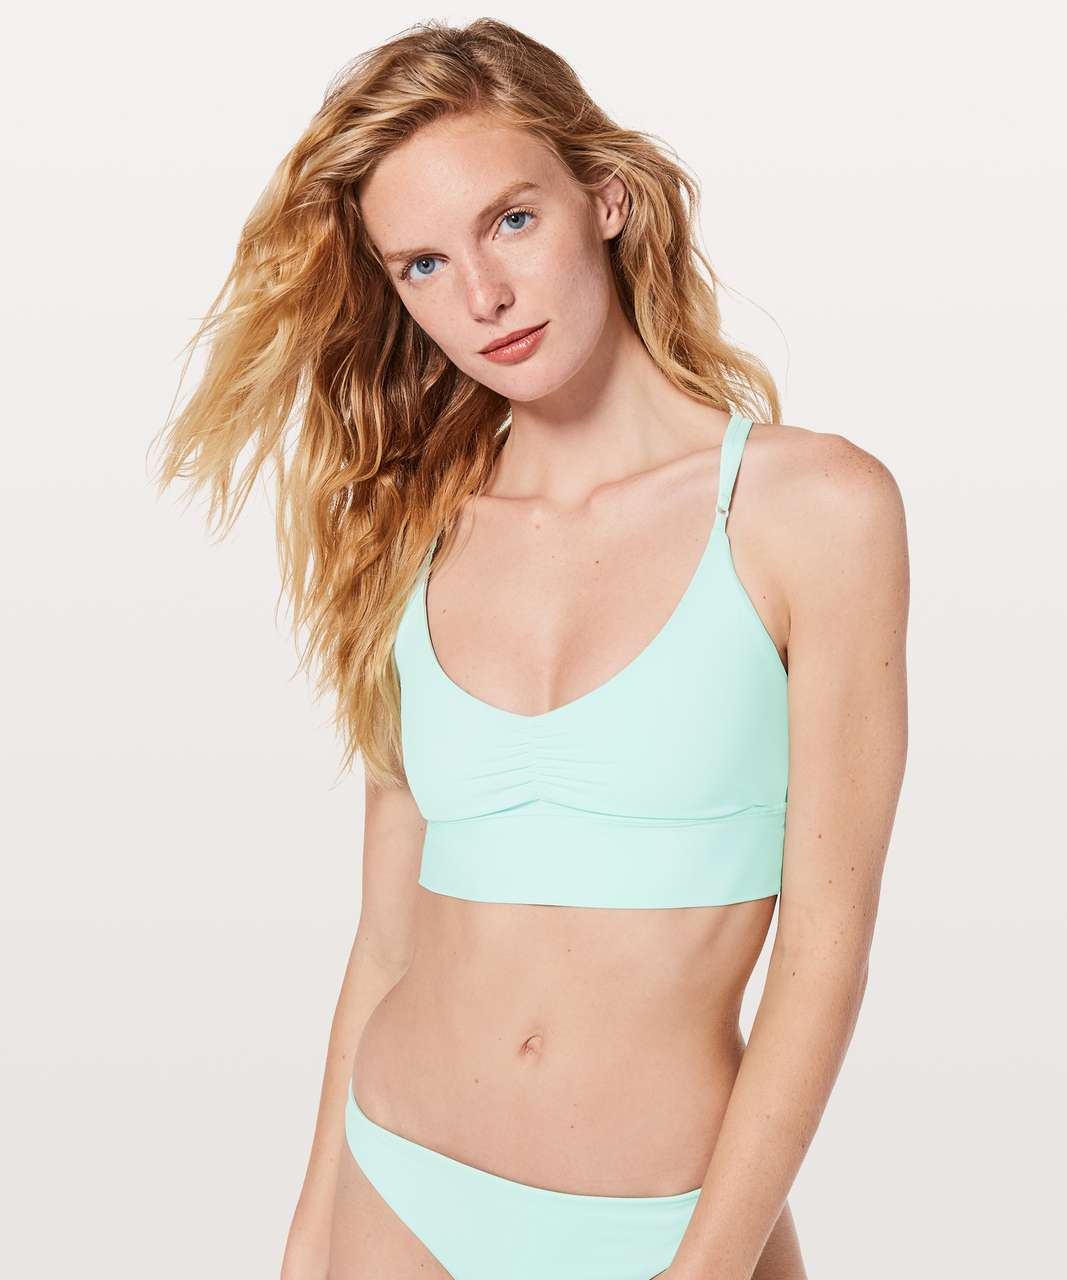 Lululemon Coastline Top - Aquamarine